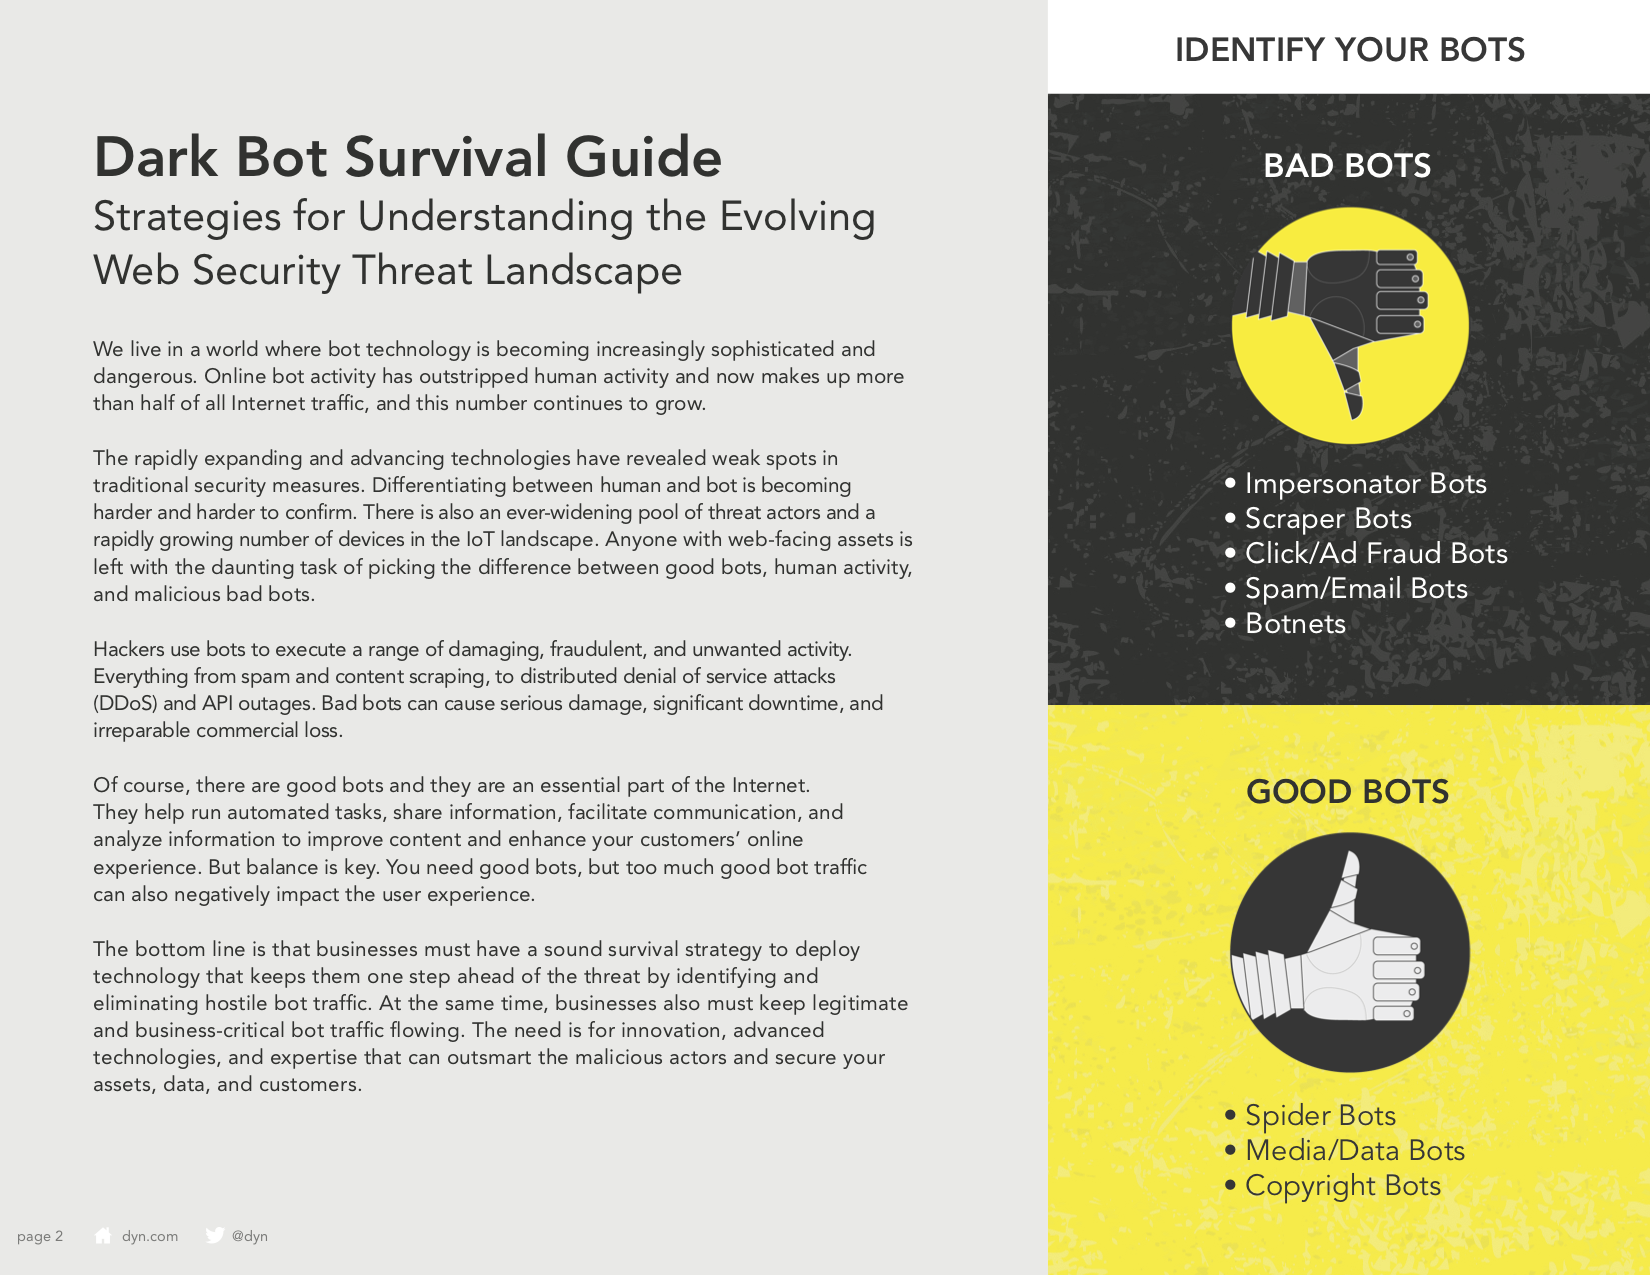 DarkBot Survival Guide_final (dragged) 2